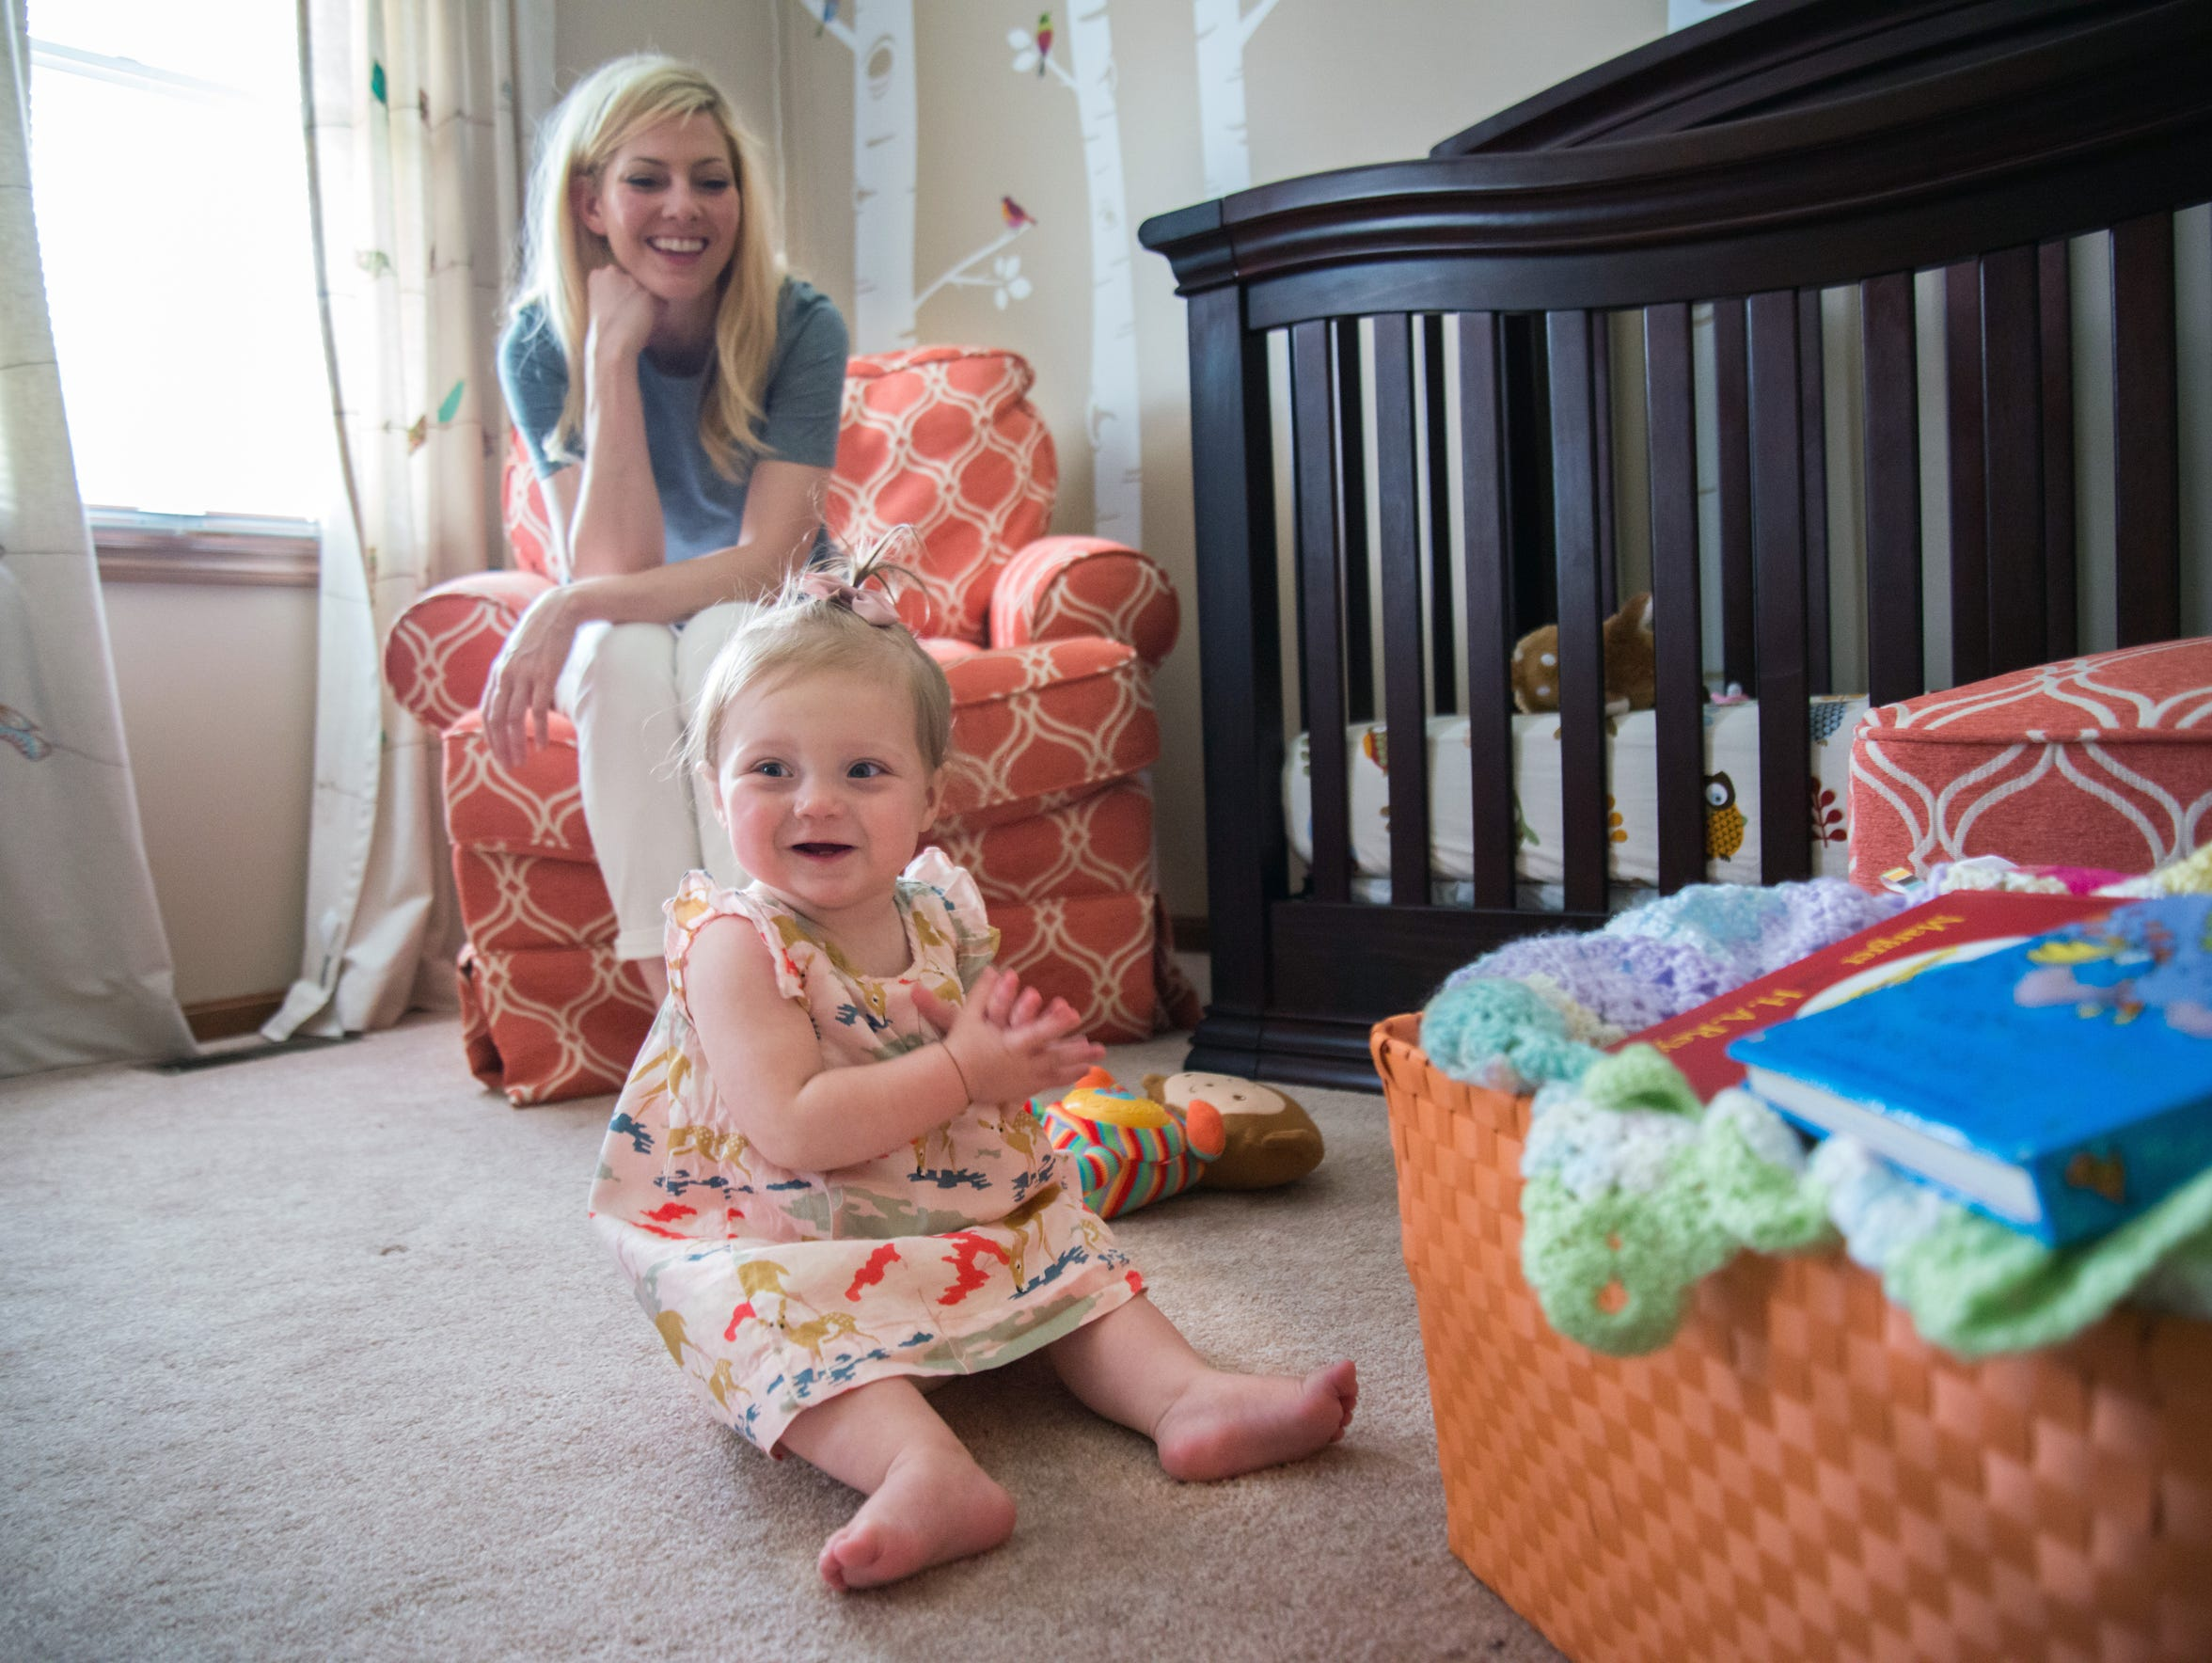 Anna Lazor plays with her daughter, Avery.